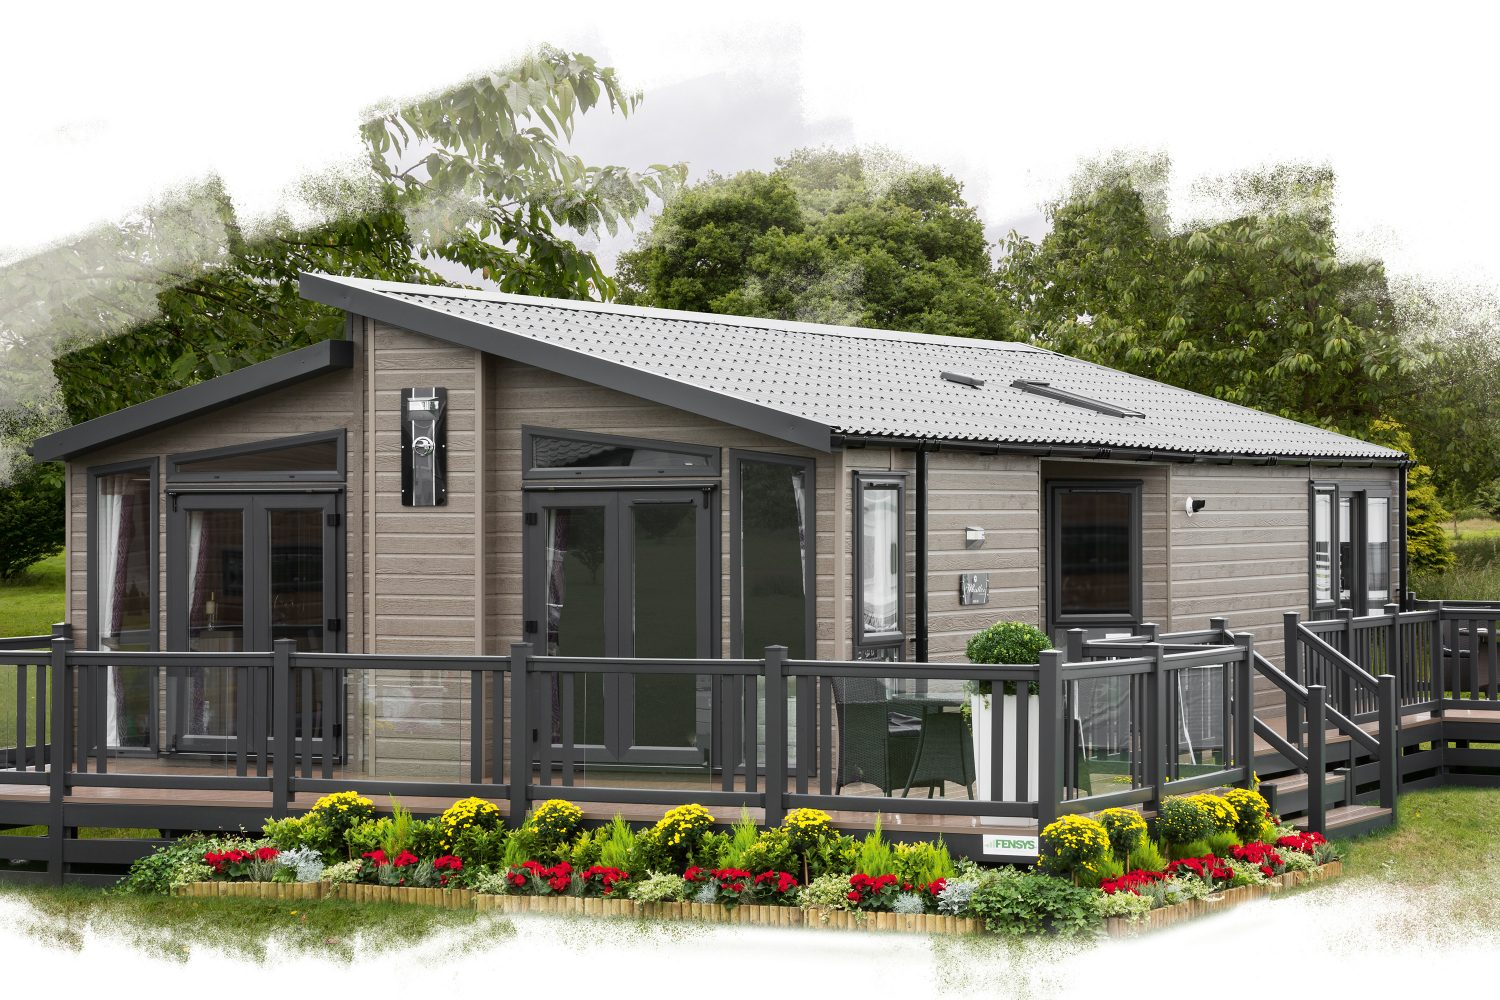 New Lodge for sale in Dorset